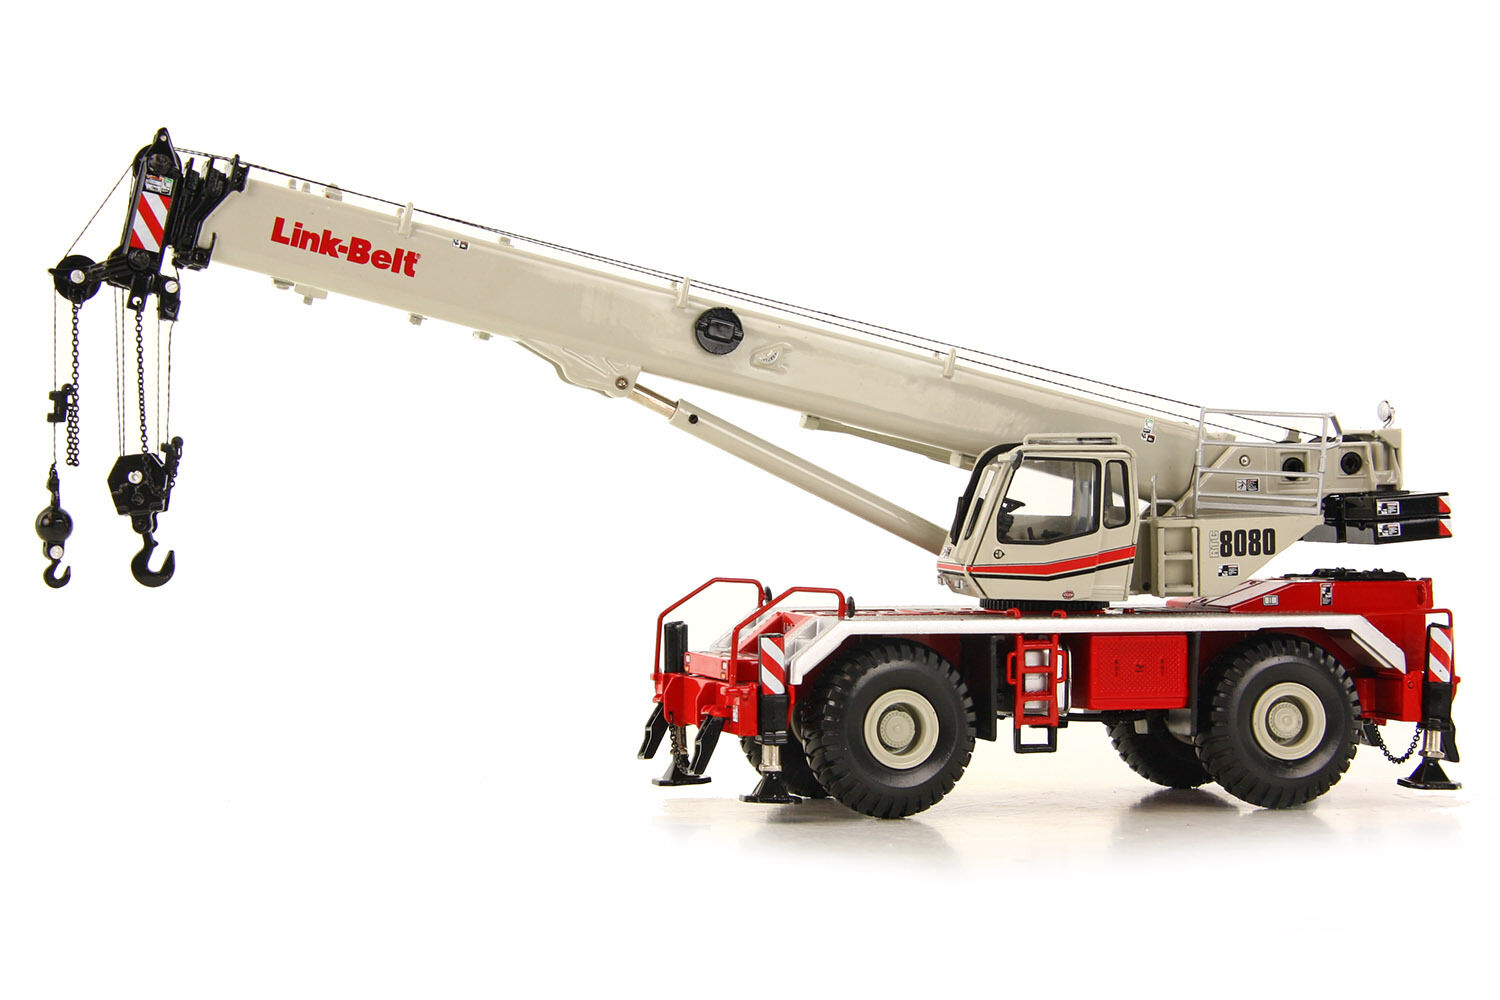 Link Belt RTC8080 Series II Rough Terrain Crane - 1 50 - Tonkin